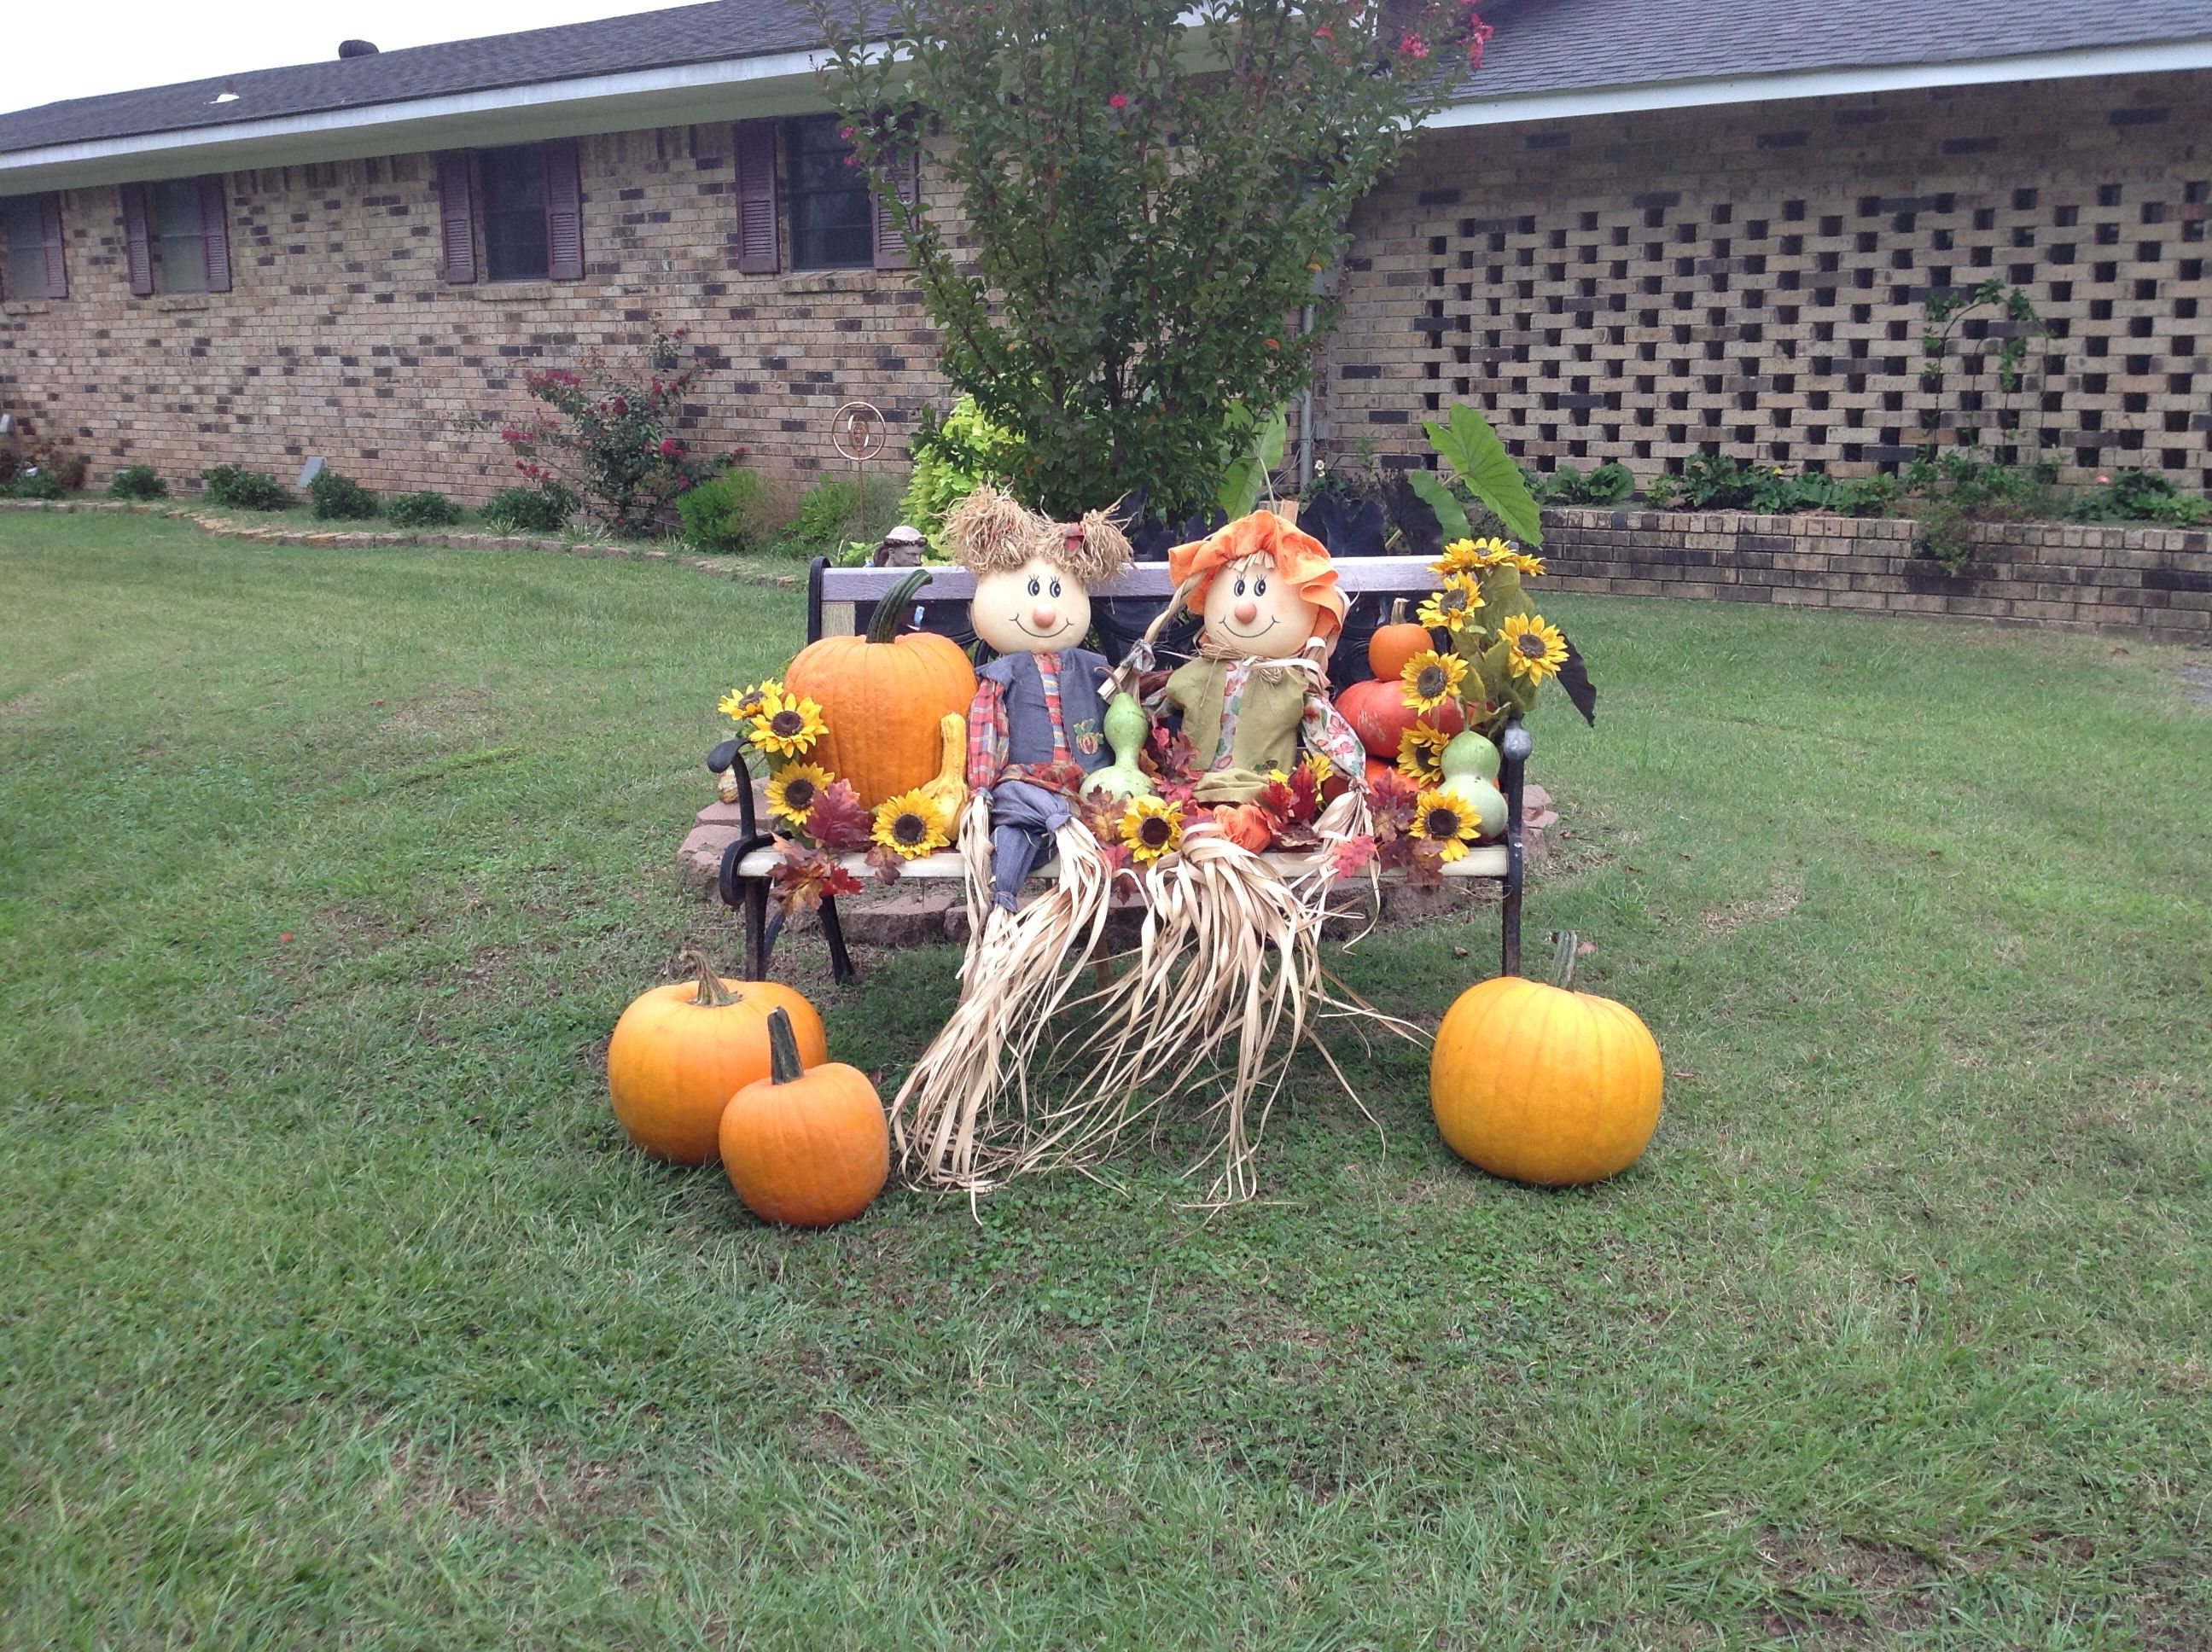 Love This Cute Idea With The Scarecrows Sitting On The Bench